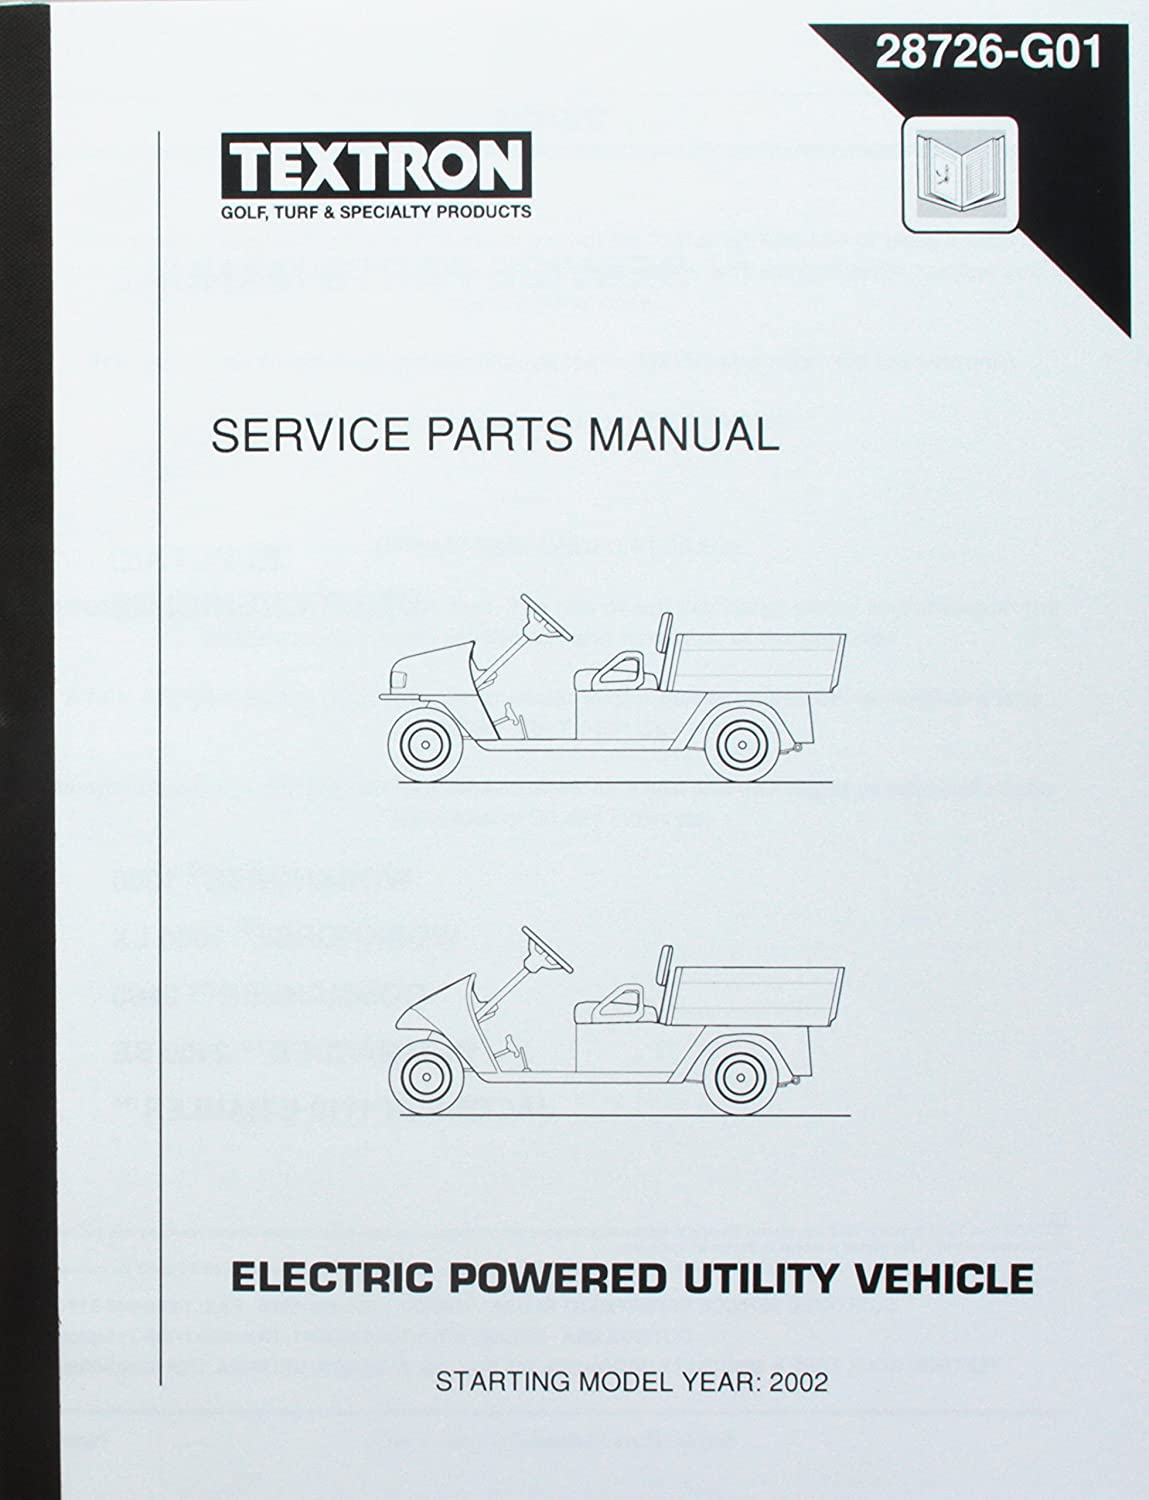 Amazon.com : EZGO 28726G01 2002 Service Parts Manual for Electric and  Jacobsen Utility Vehicle : Outdoor Decorative Fences : Garden & Outdoor